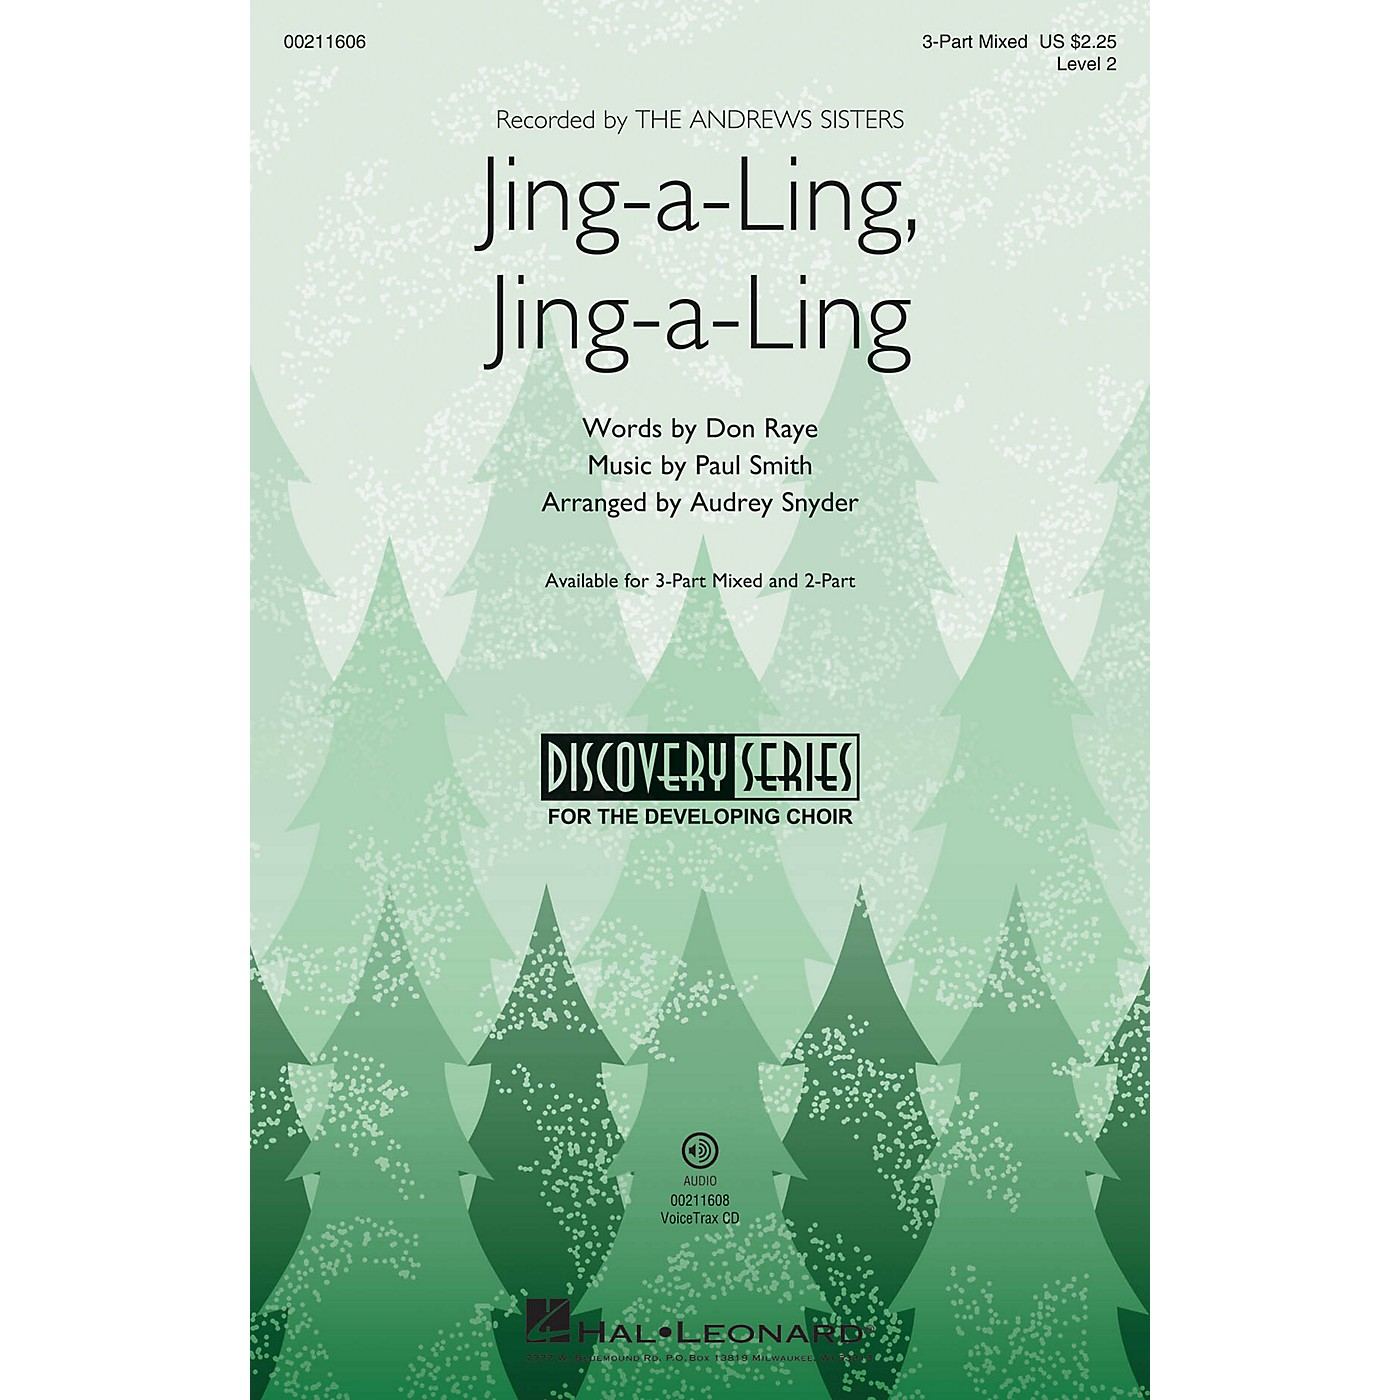 Hal Leonard Jing-a-Ling, Jing-a-Ling (Discovery Level 2) 3-Part Mixed arranged by Audrey Snyder thumbnail